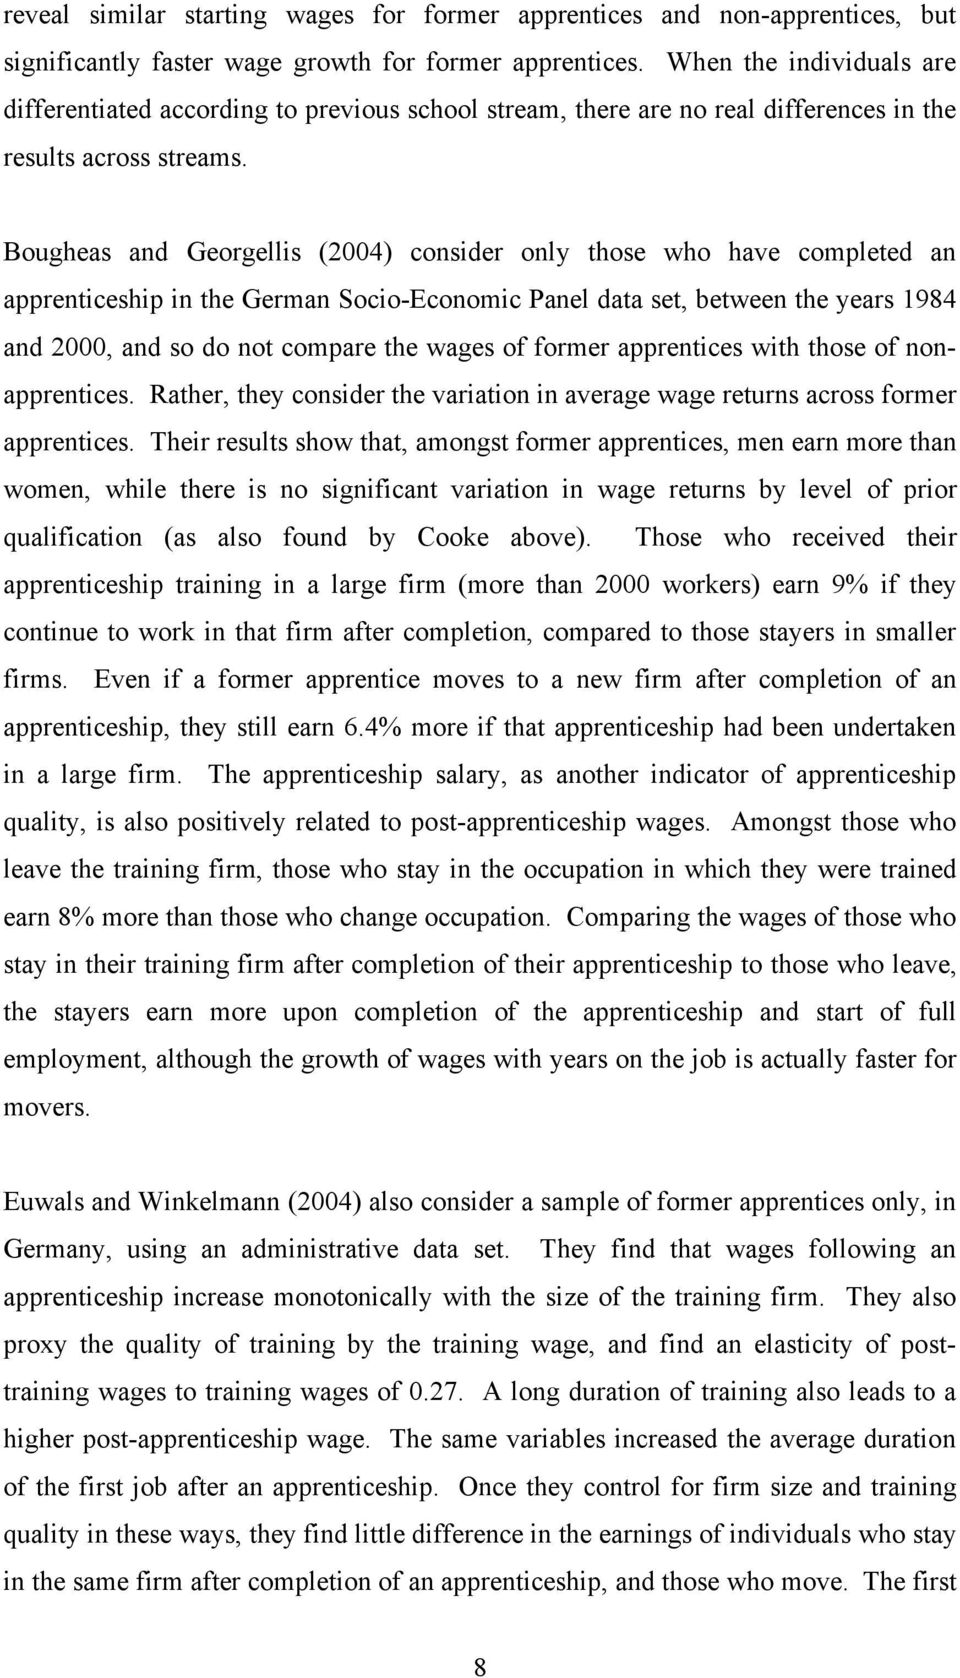 Bougheas and Georgellis (2004) consider only those who have completed an apprenticeship in the German Socio-Economic Panel data set, between the years 1984 and 2000, and so do not compare the wages